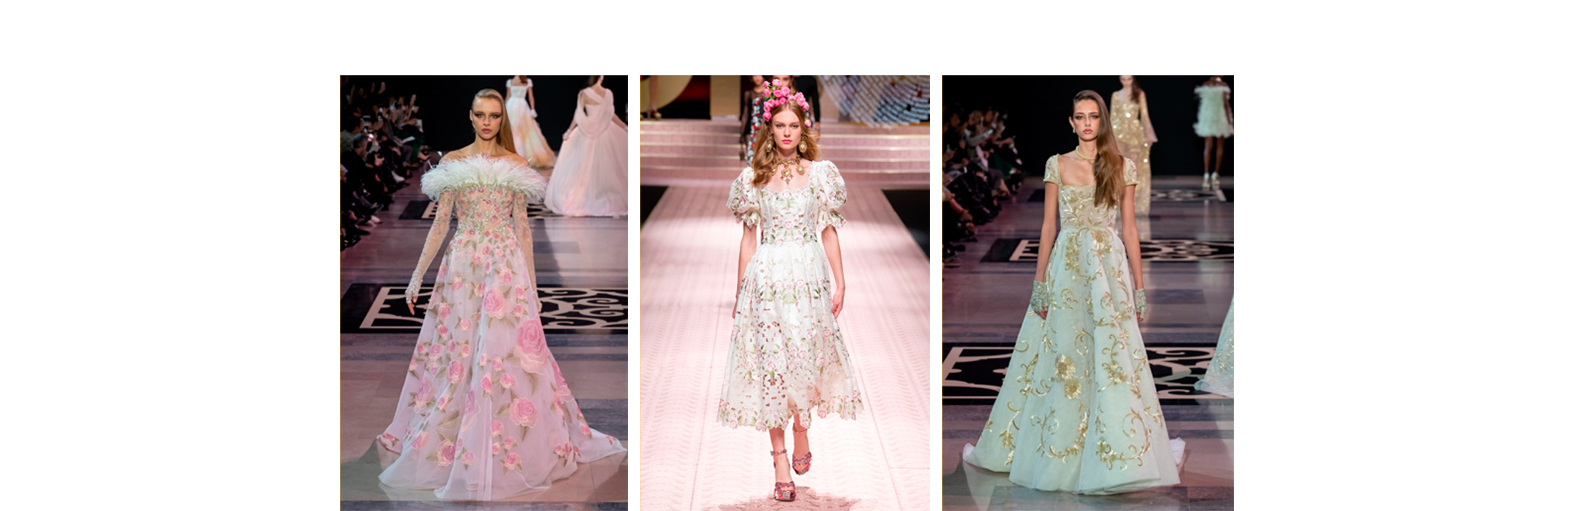 a71ba9c2659 Our team was wowed by the pairing of powdery pinks with unexpected shades